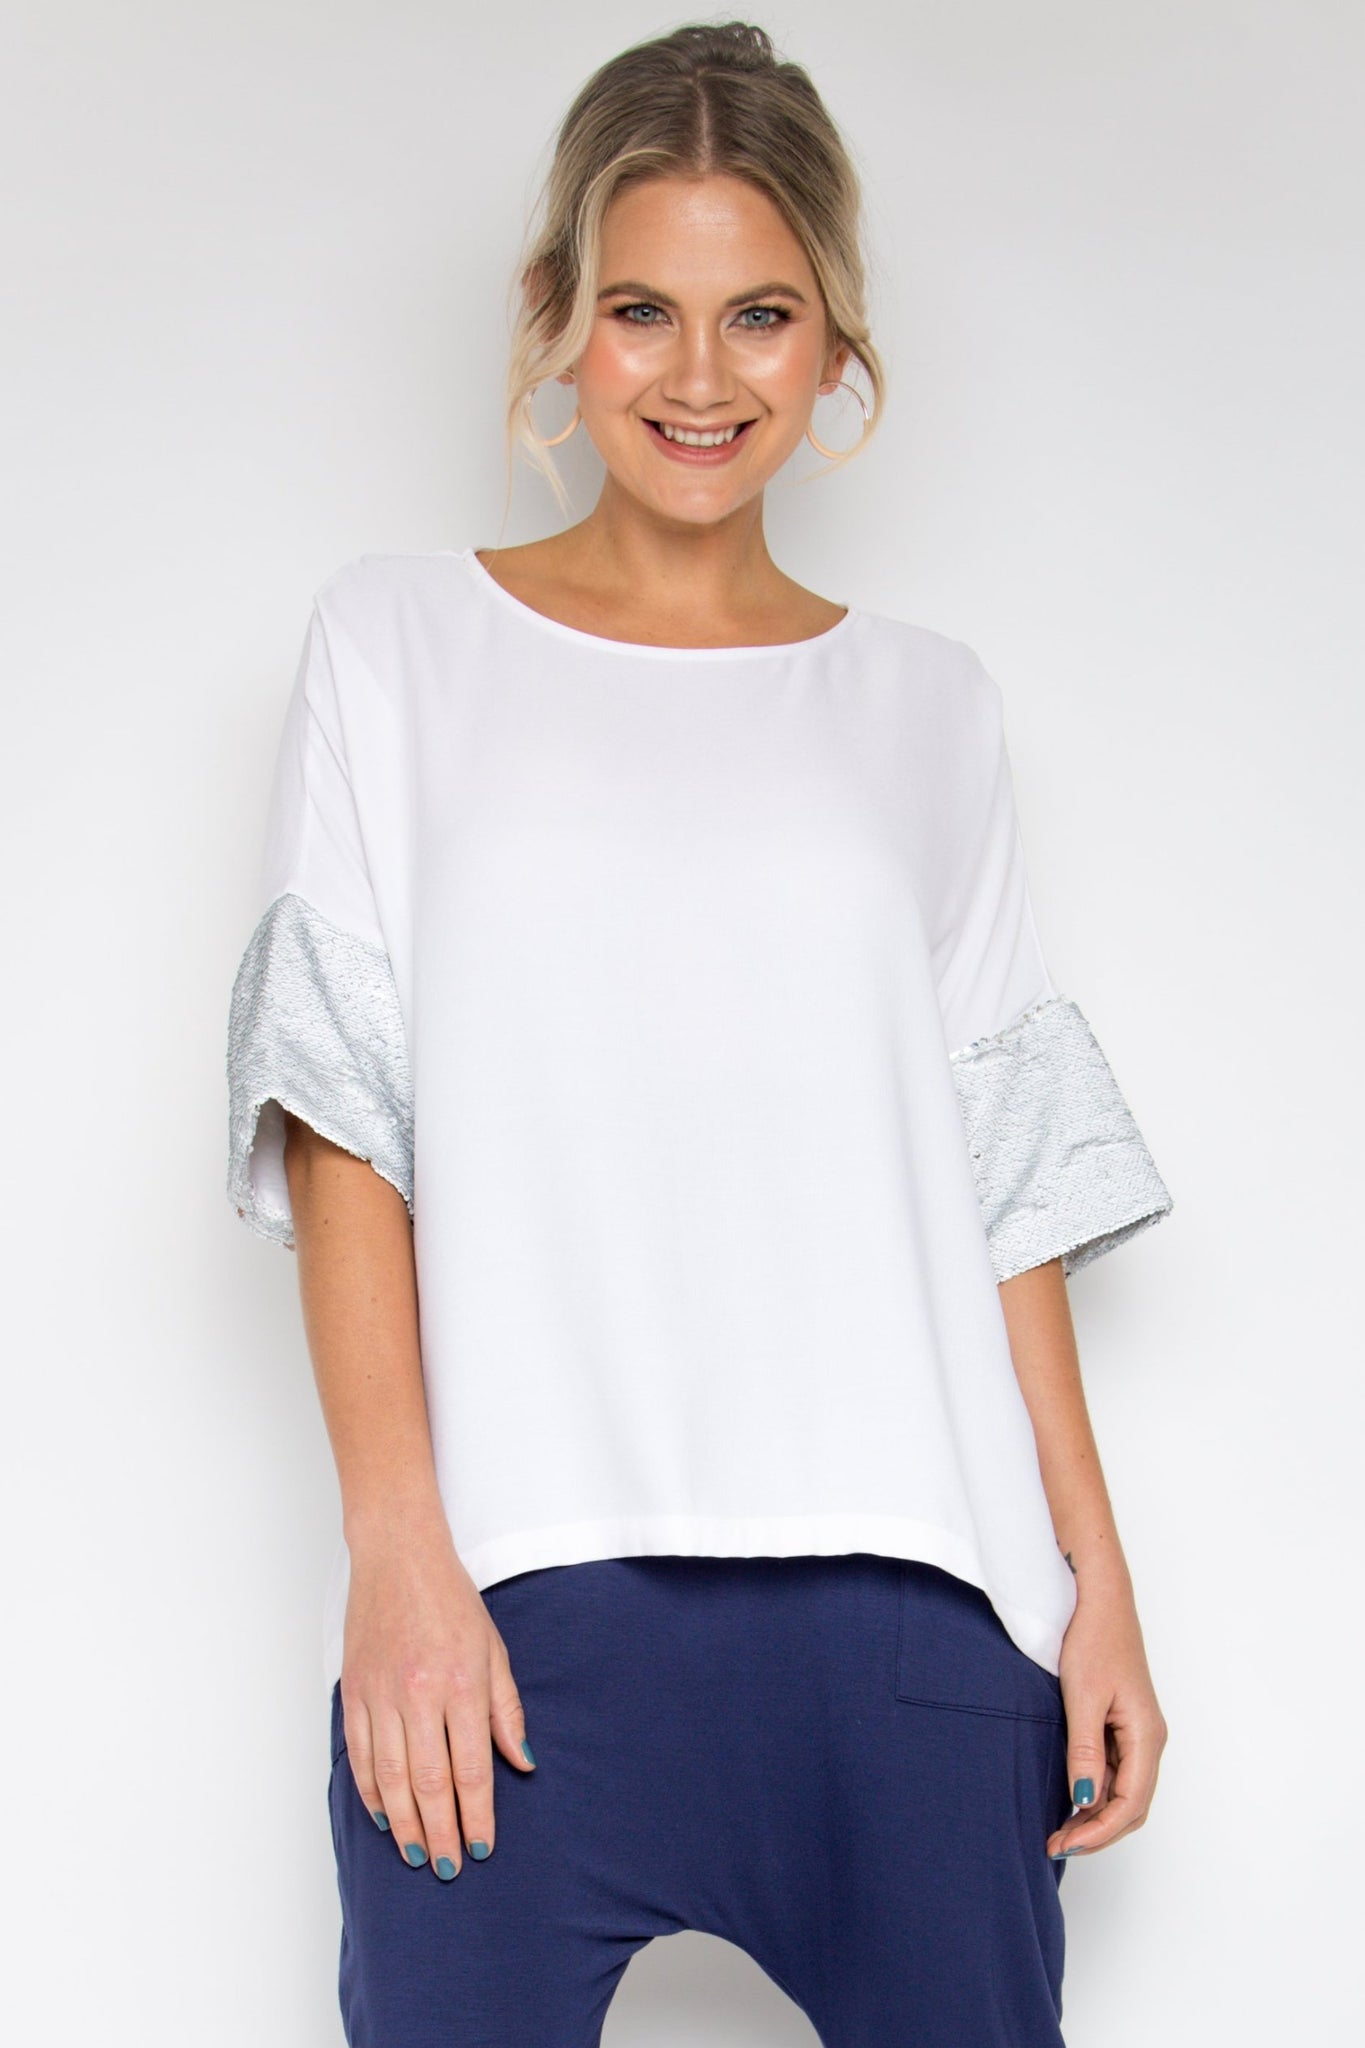 A Cute Top with sequin sleeves in Coconut / White Silver